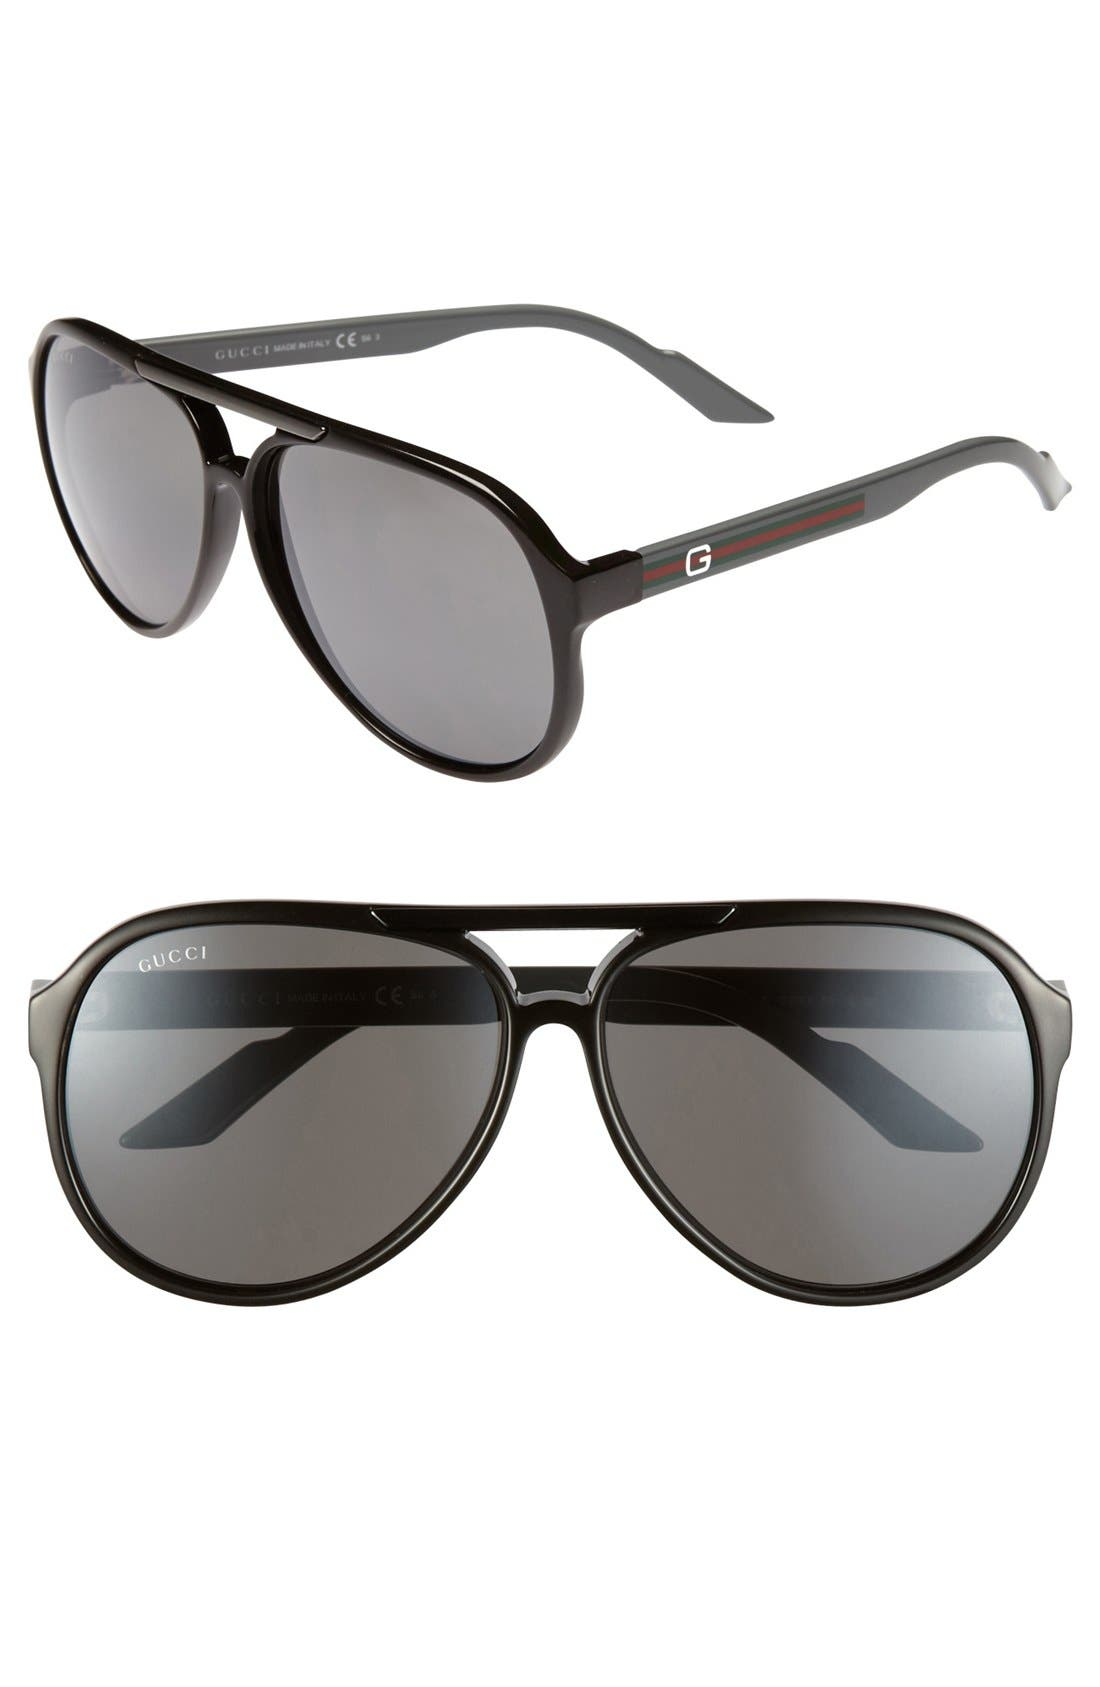 Alternate Image 1 Selected - Gucci '1627/S' 59mm Aviator Sunglasses